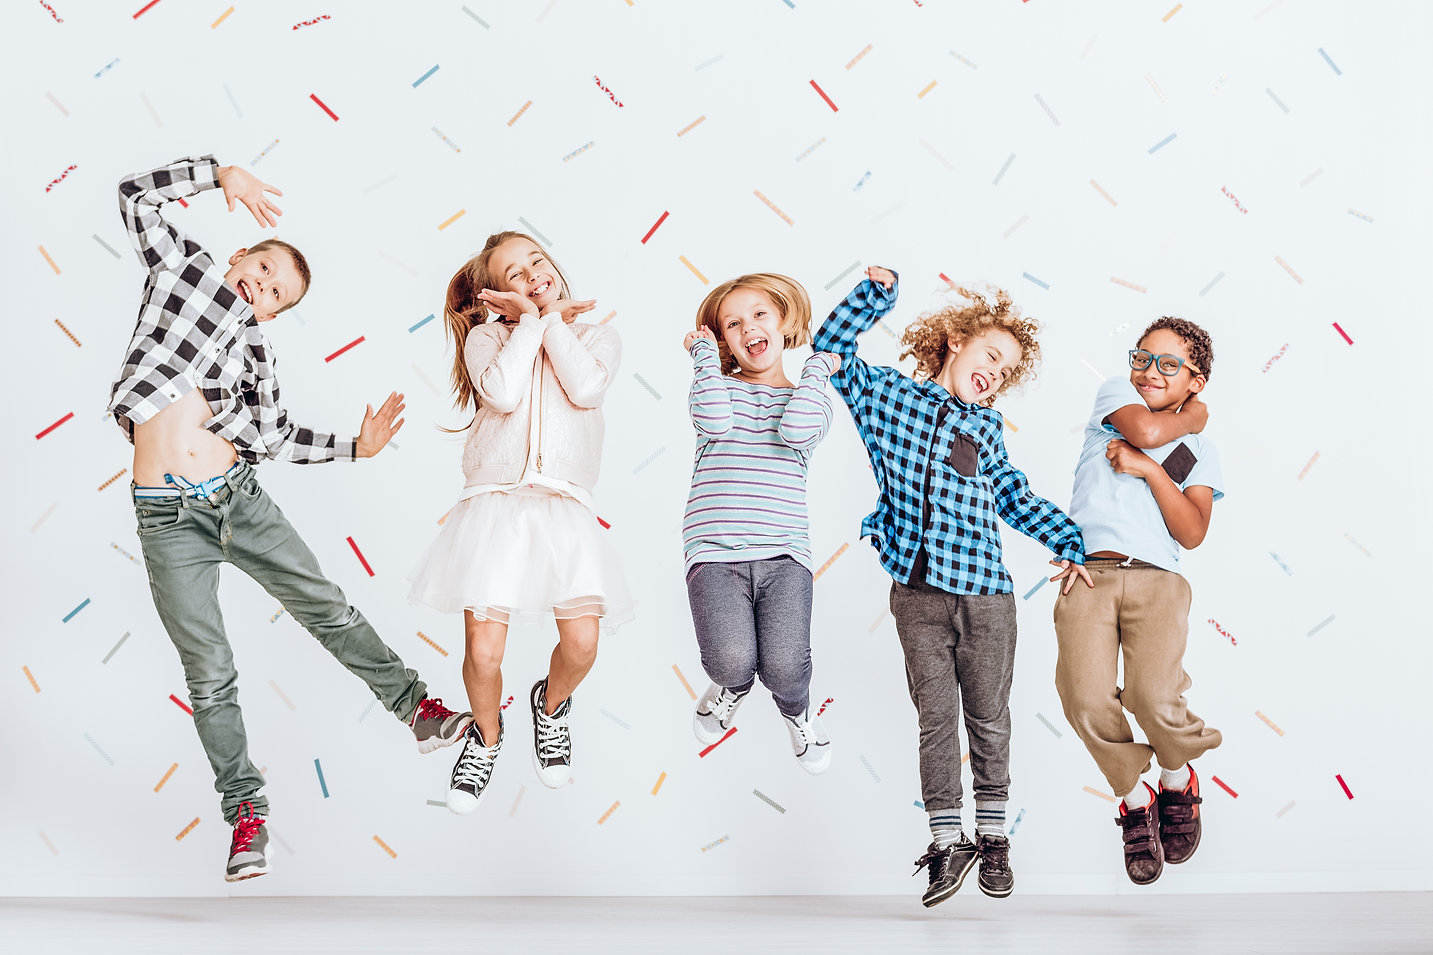 Happy group of kids jumping in a room wi